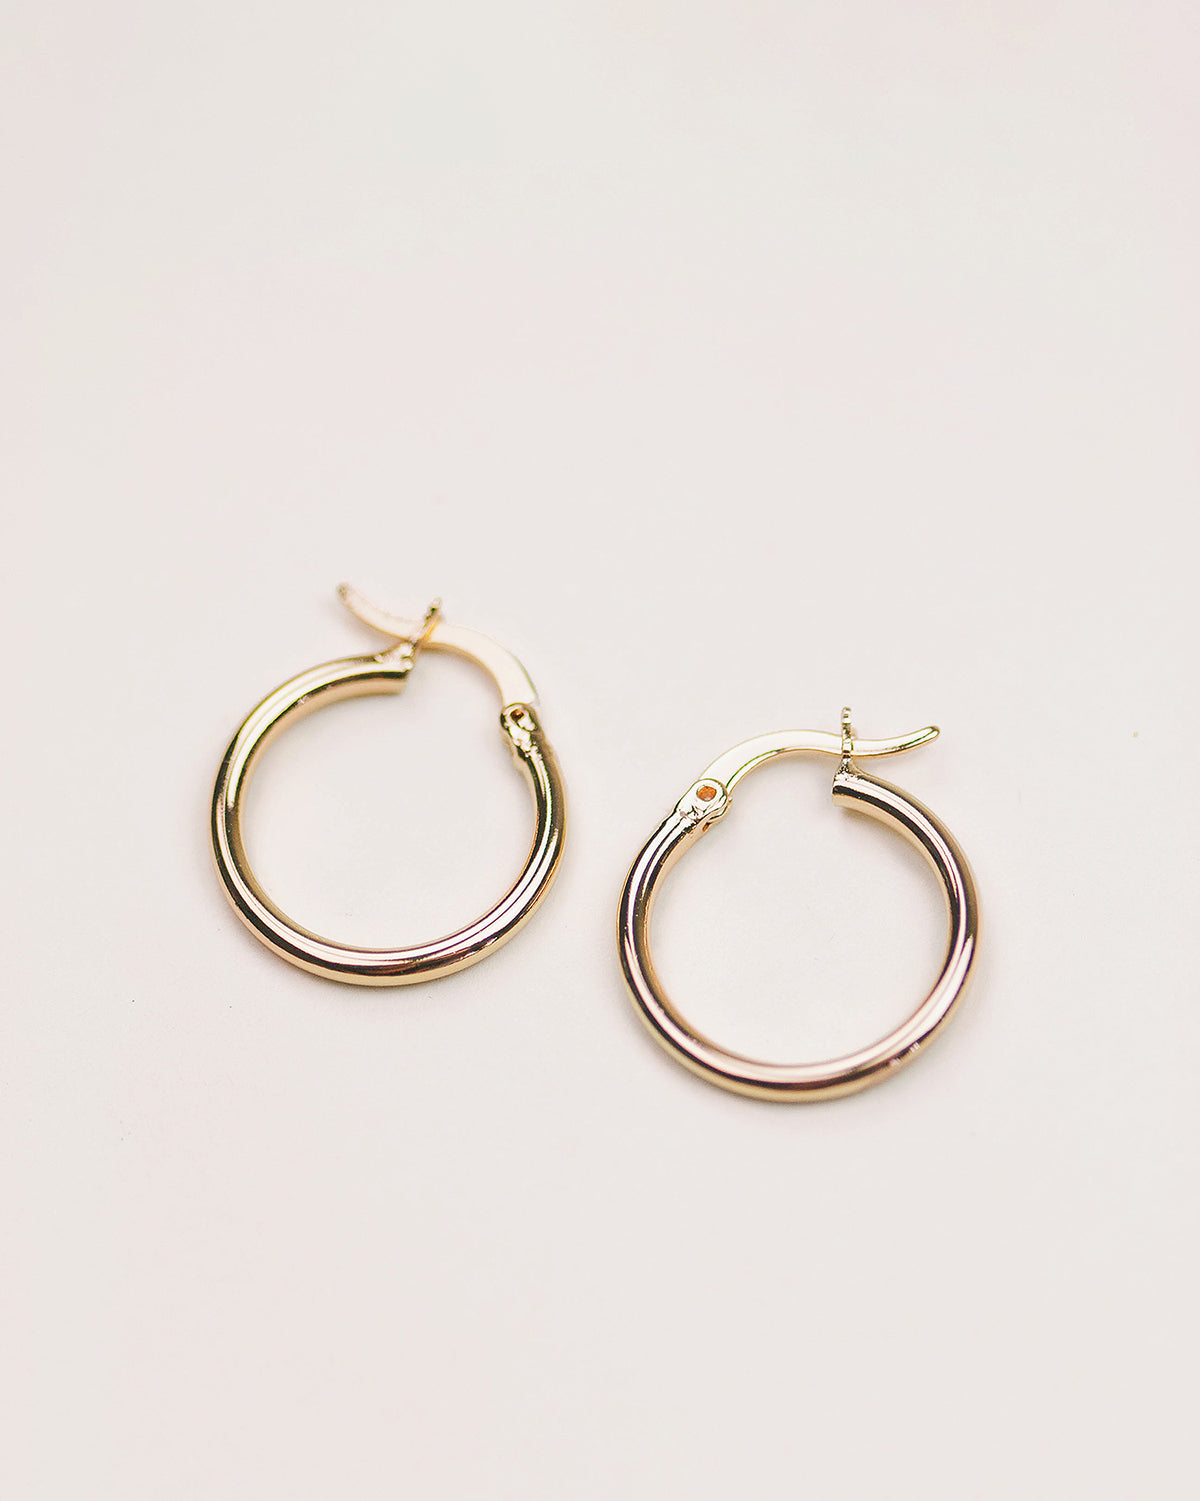 Image of Hilda Simple Hoop Earrings - Midi